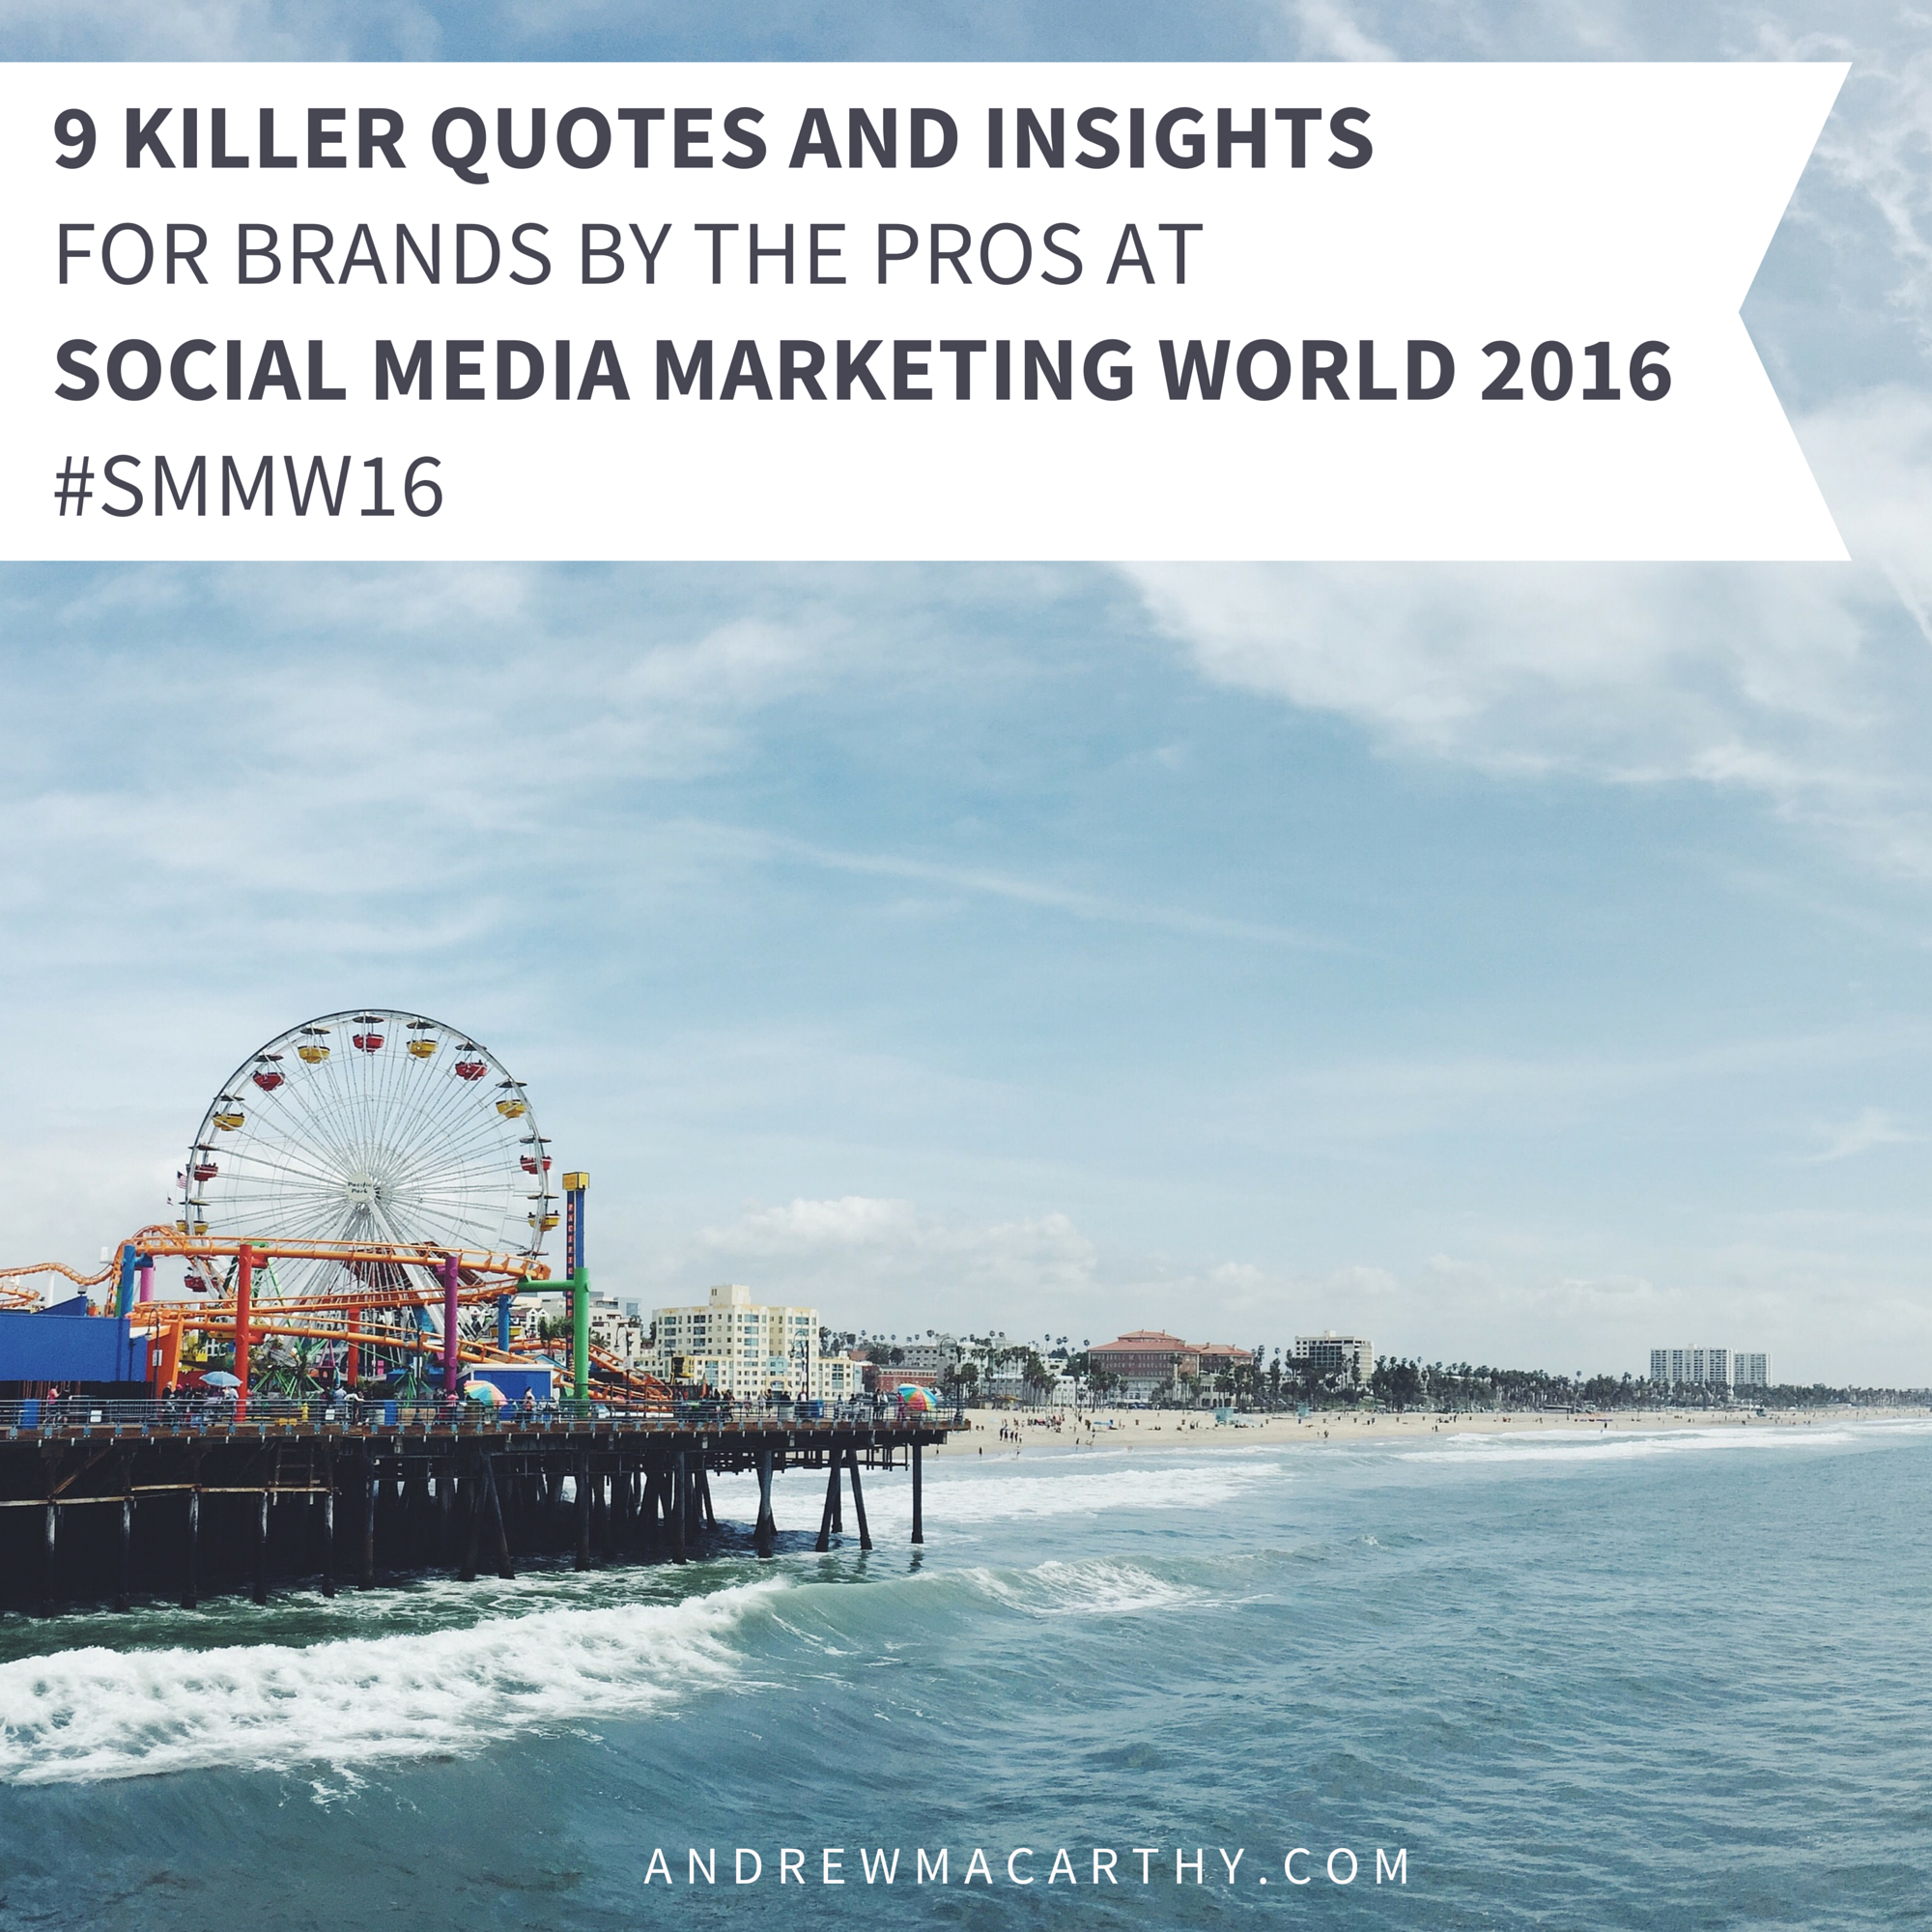 9 Killer Quotes and Insights for Brands By the Pros At Social Media Marketing World 2016 #SMMW16